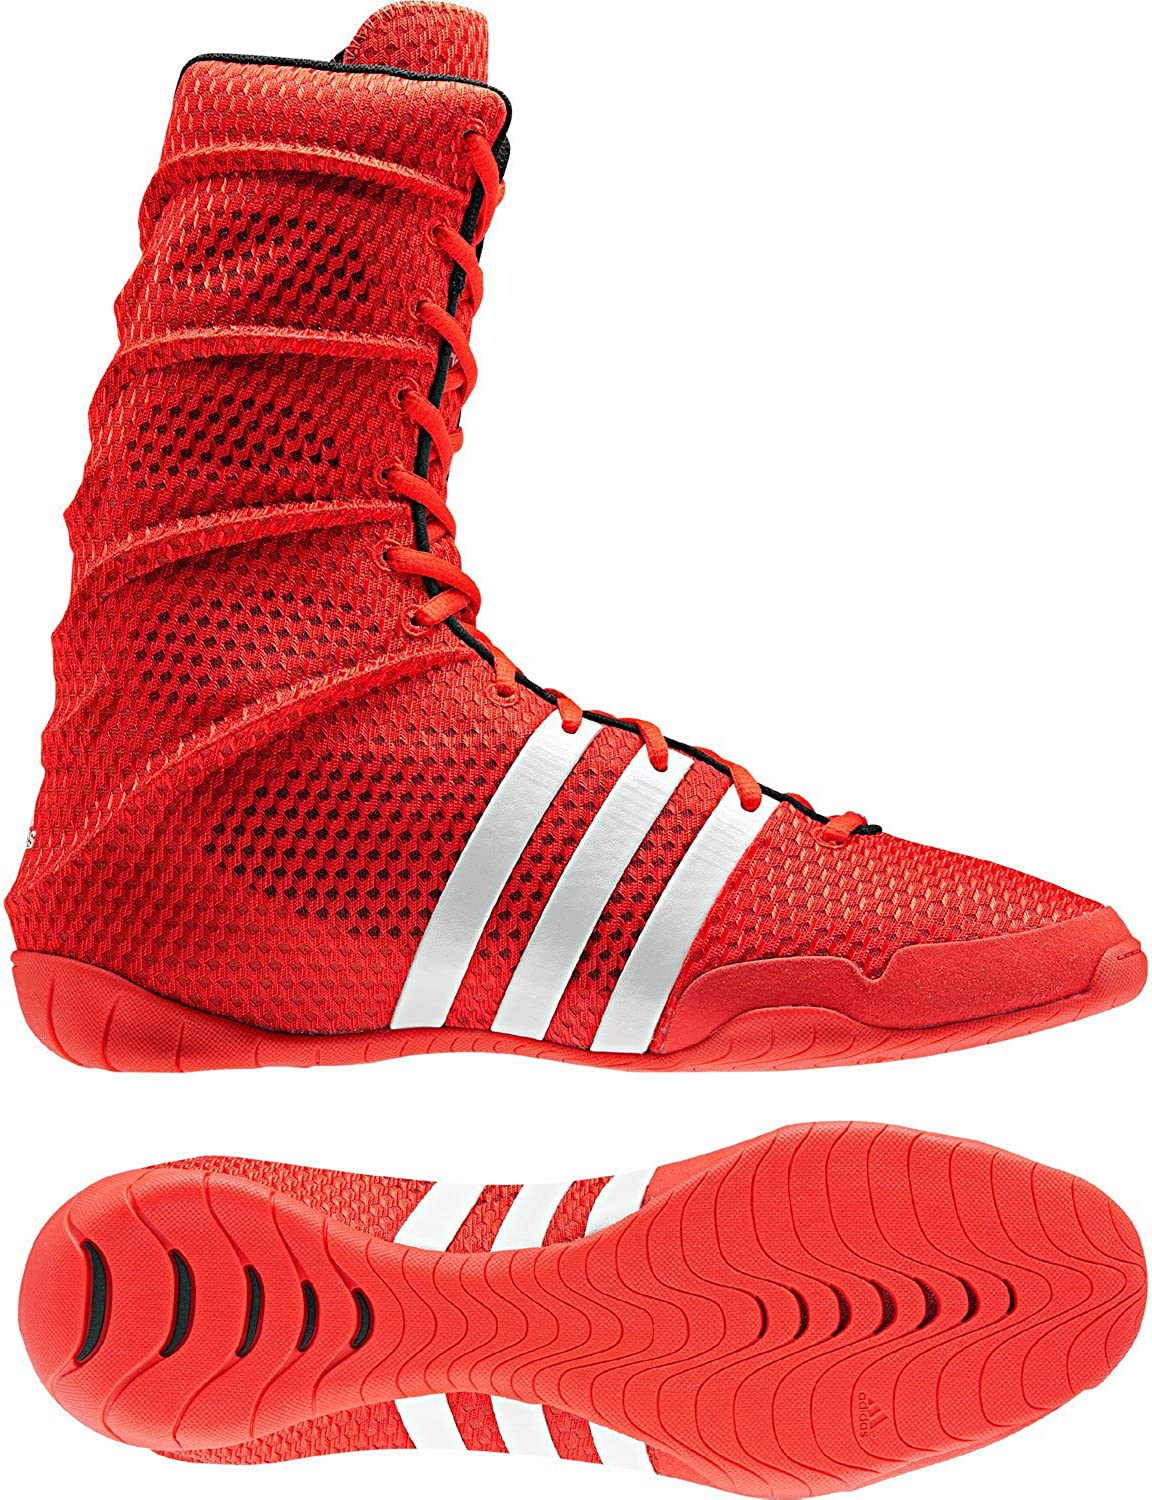 adidas Adipower Olympic Red Boxing Shoes (US 5.5 ... - Amazon.com